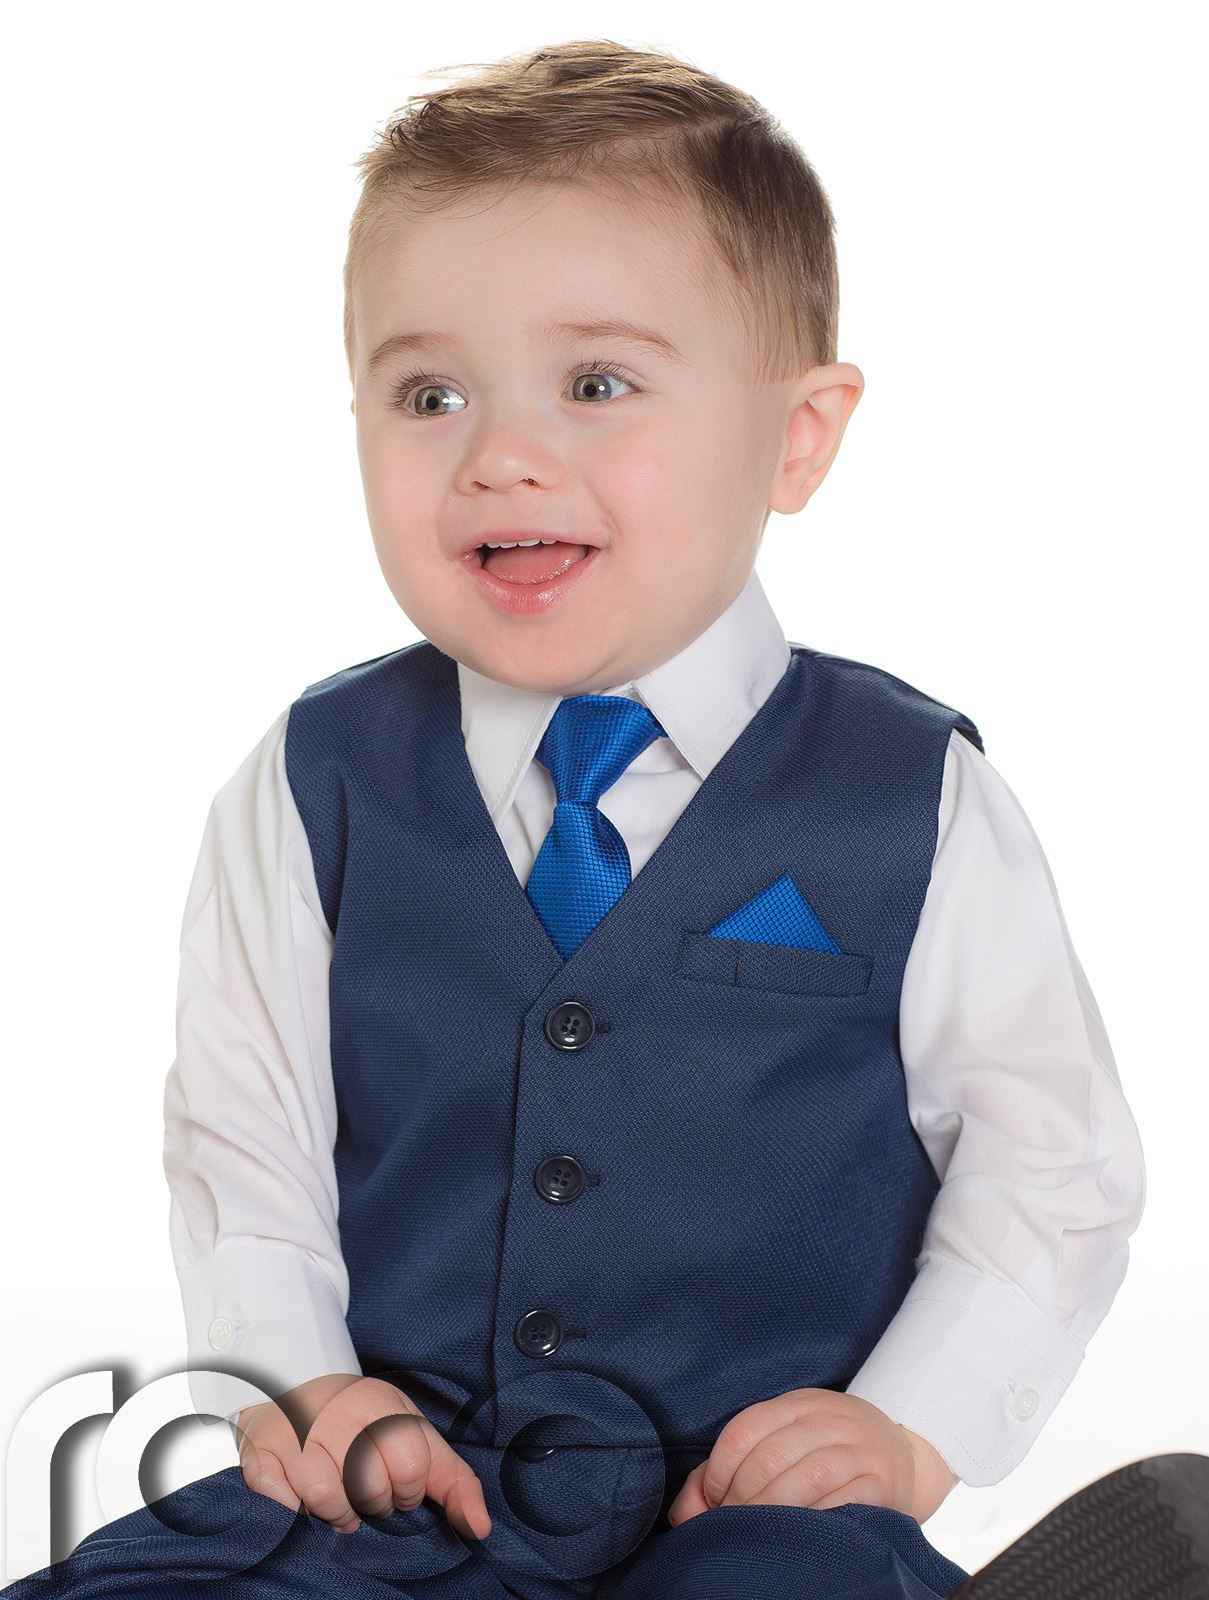 You searched for: baby formal wear! Etsy is the home to thousands of handmade, vintage, and one-of-a-kind products and gifts related to your search. No matter what you're looking for or where you are in the world, our global marketplace of sellers can help you find unique and affordable options. Let's get started!